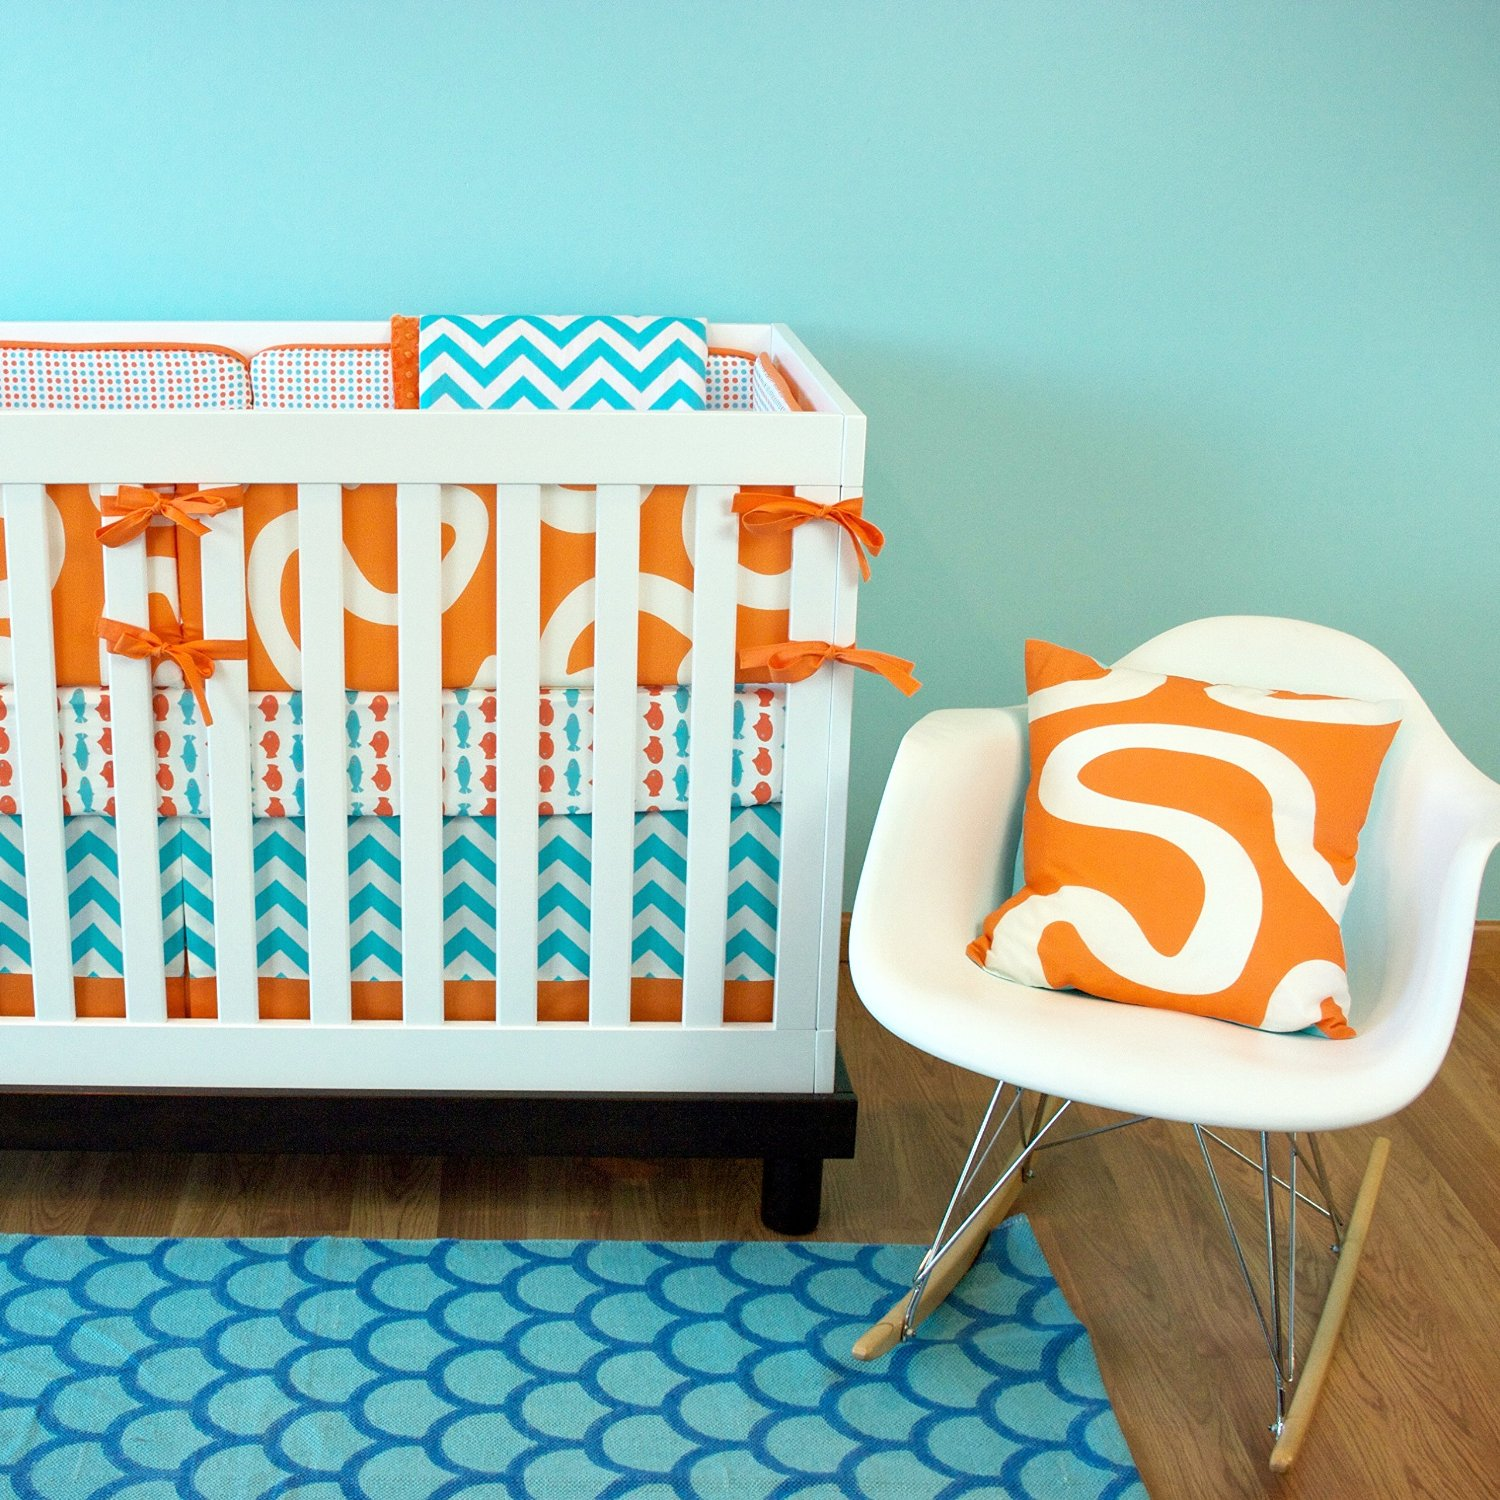 Blue and Orange Nursery Crib Sets & Bedding for Baby Girls and Boys